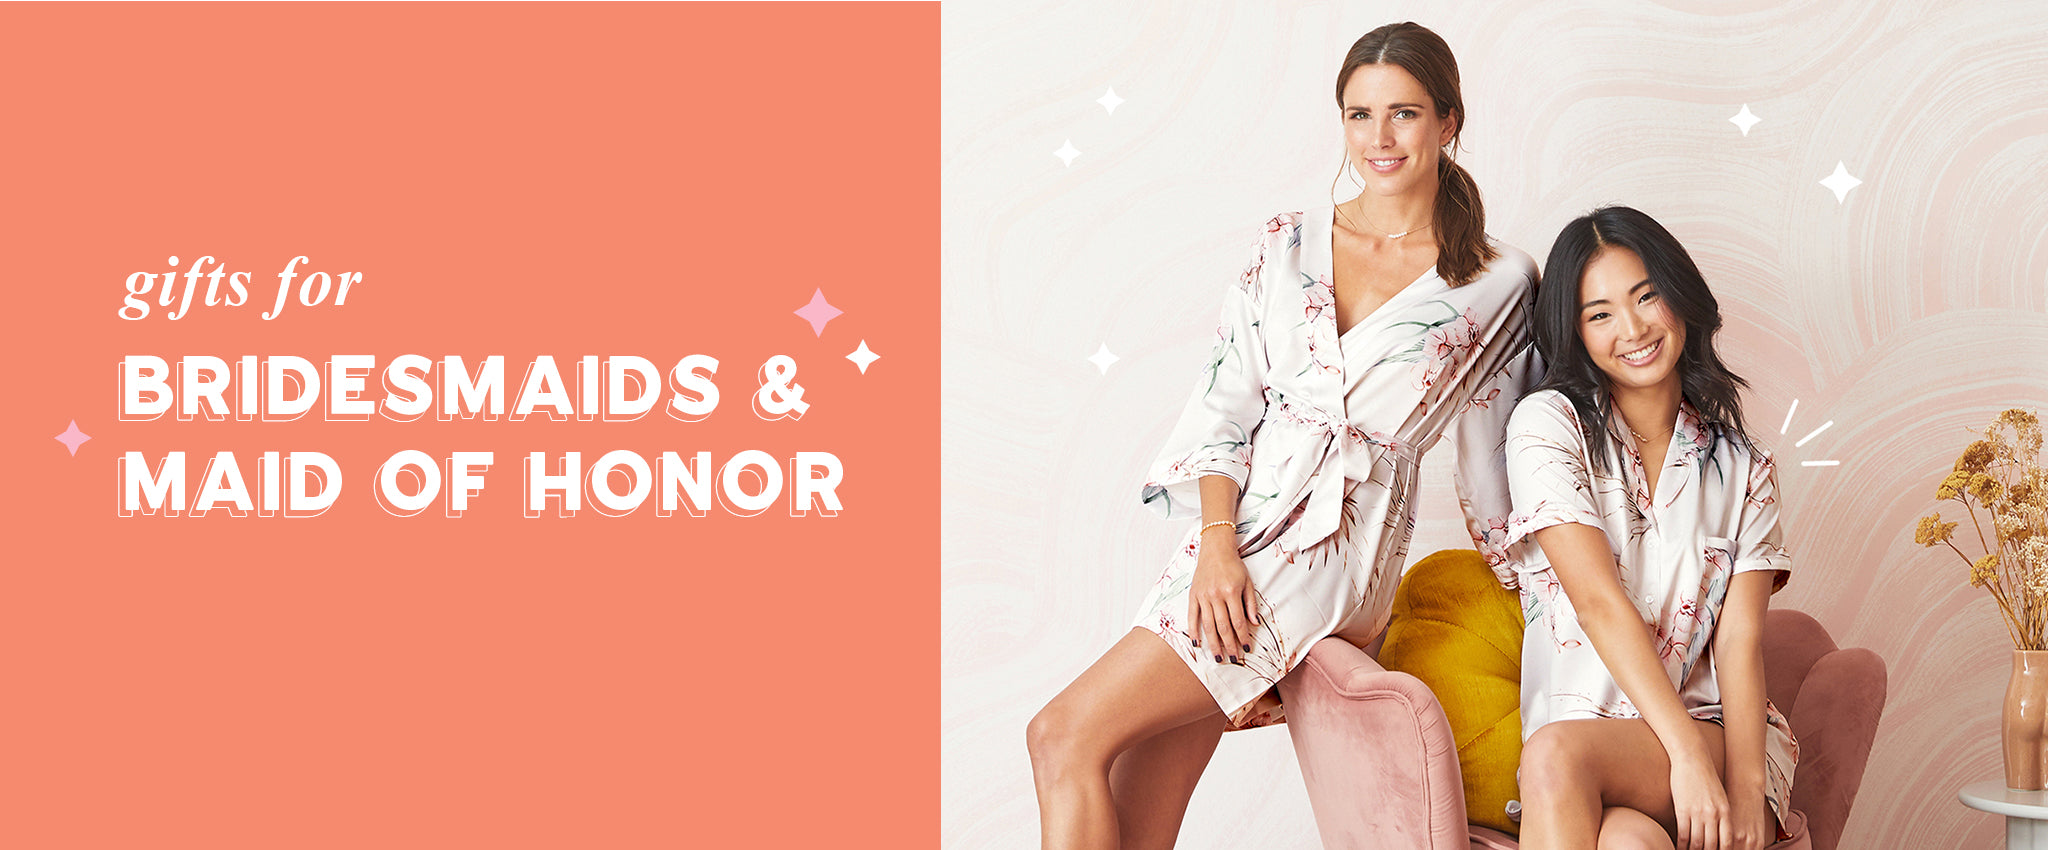 Gifts for Bridesmaids & Maid of Honor